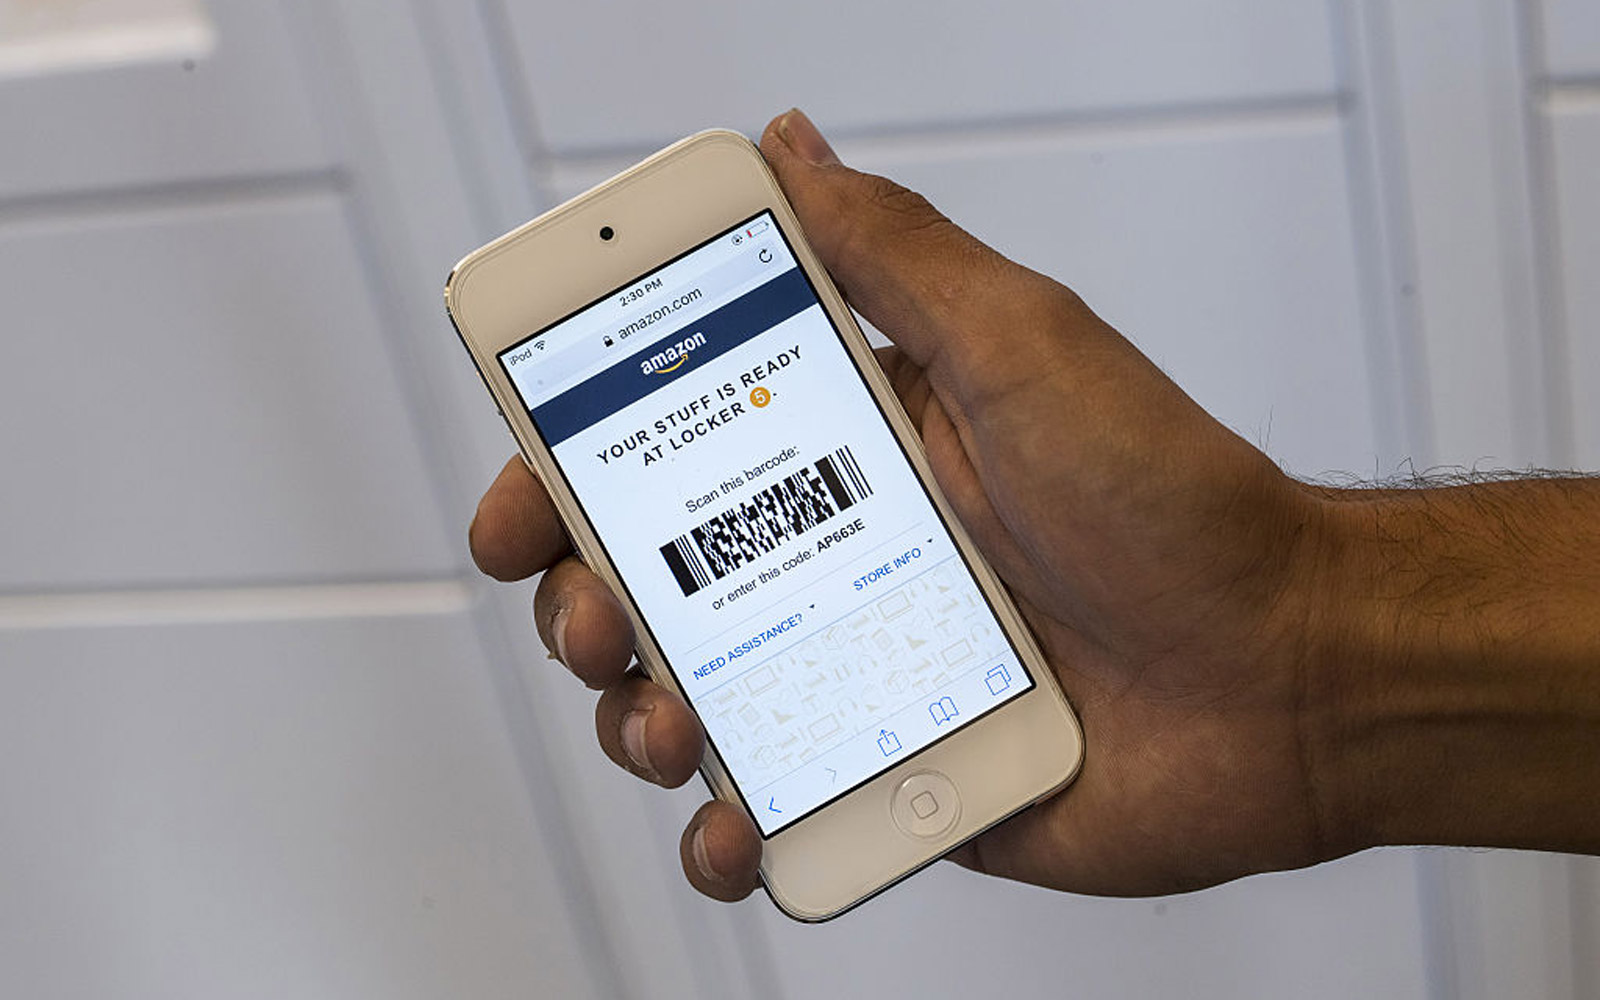 An Amazon.com Inc. webpage is displayed on an Apple Inc. iPhone for a photograph at an Amazon.com Inc. kiosk on the University of California, Berkeley campus in Berkeley, California, U.S., on Wednesday, Oct. 12, 2016. By the end of the year, Amazon will h